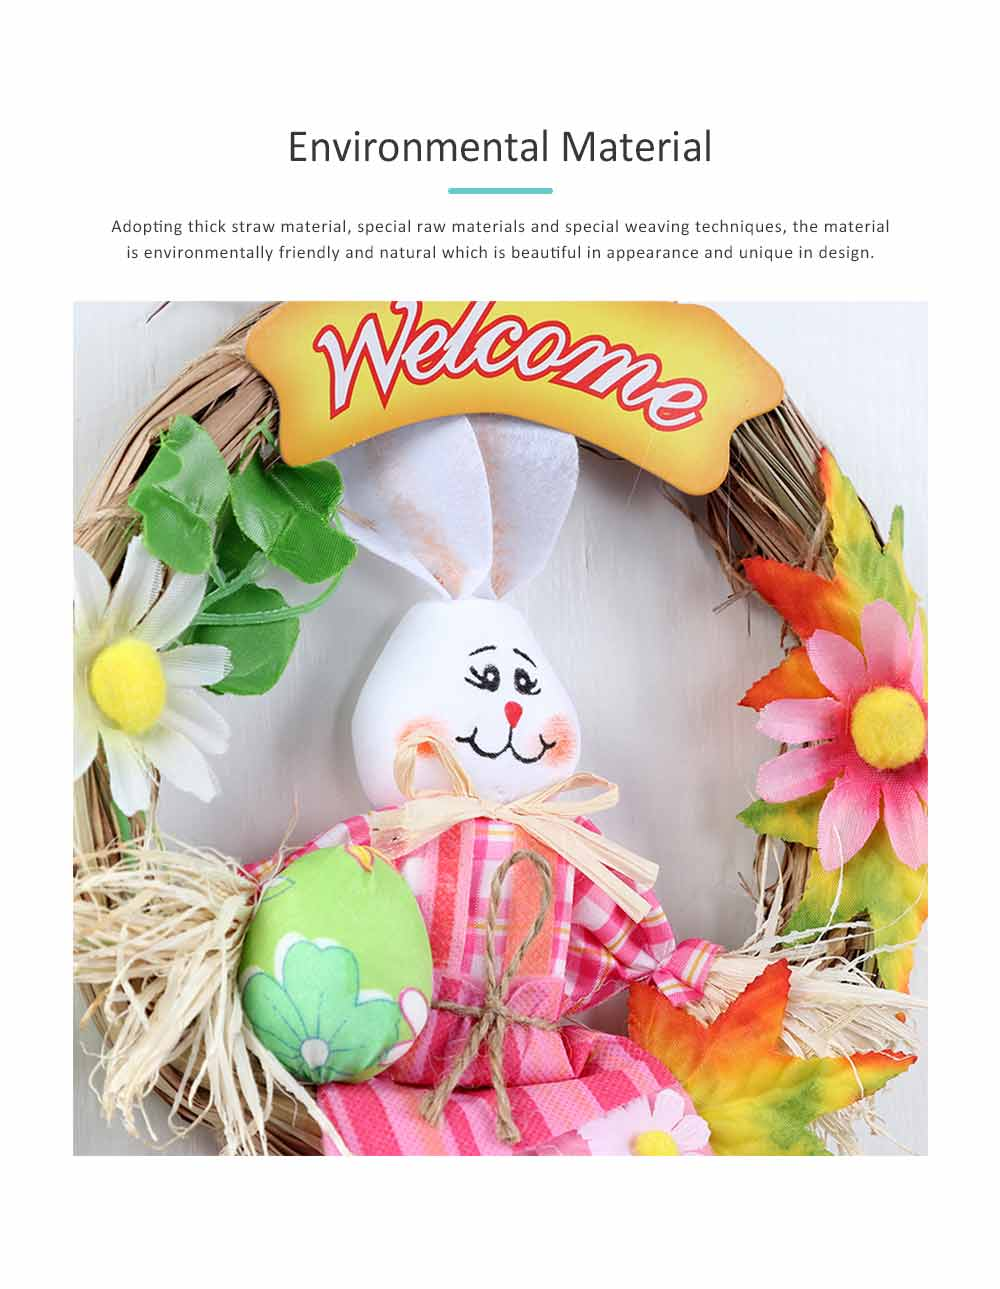 Easter Scarecrow Wreath with Rabbit Design for Kids, Creative DIY Handmade Wreath 5